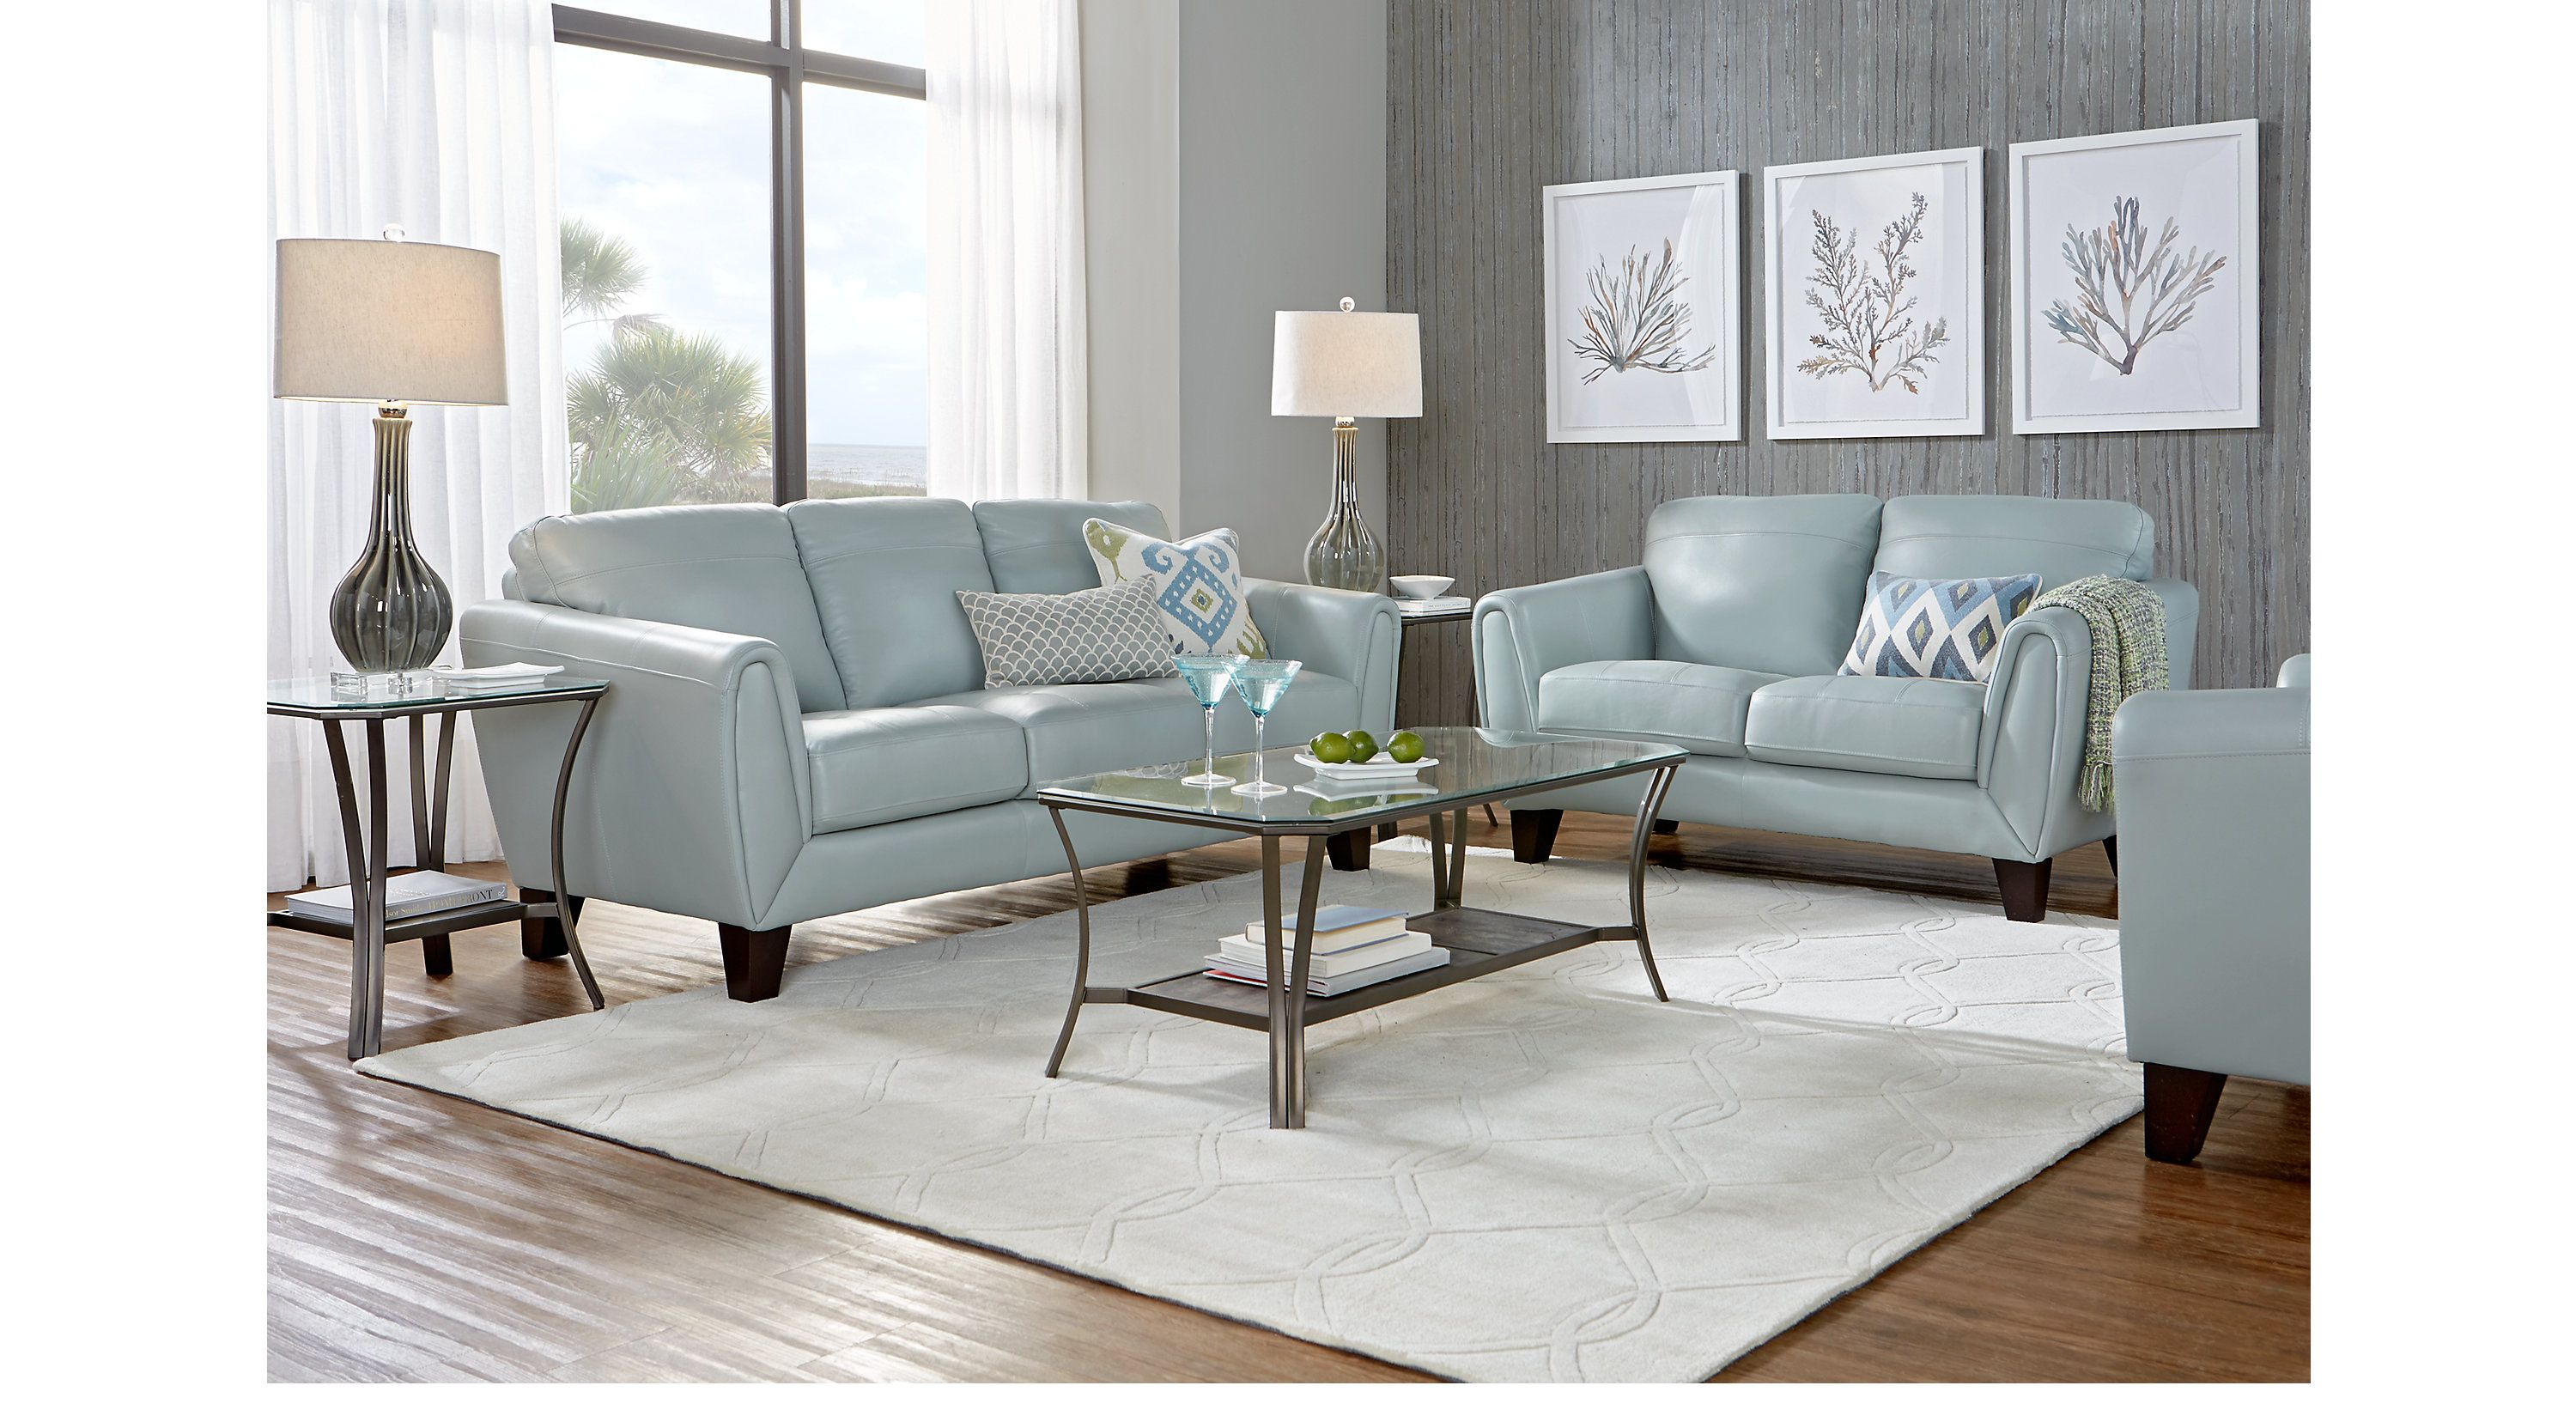 Best Livorno Aqua Leather 3 Pc Living Room Leather Living 400 x 300